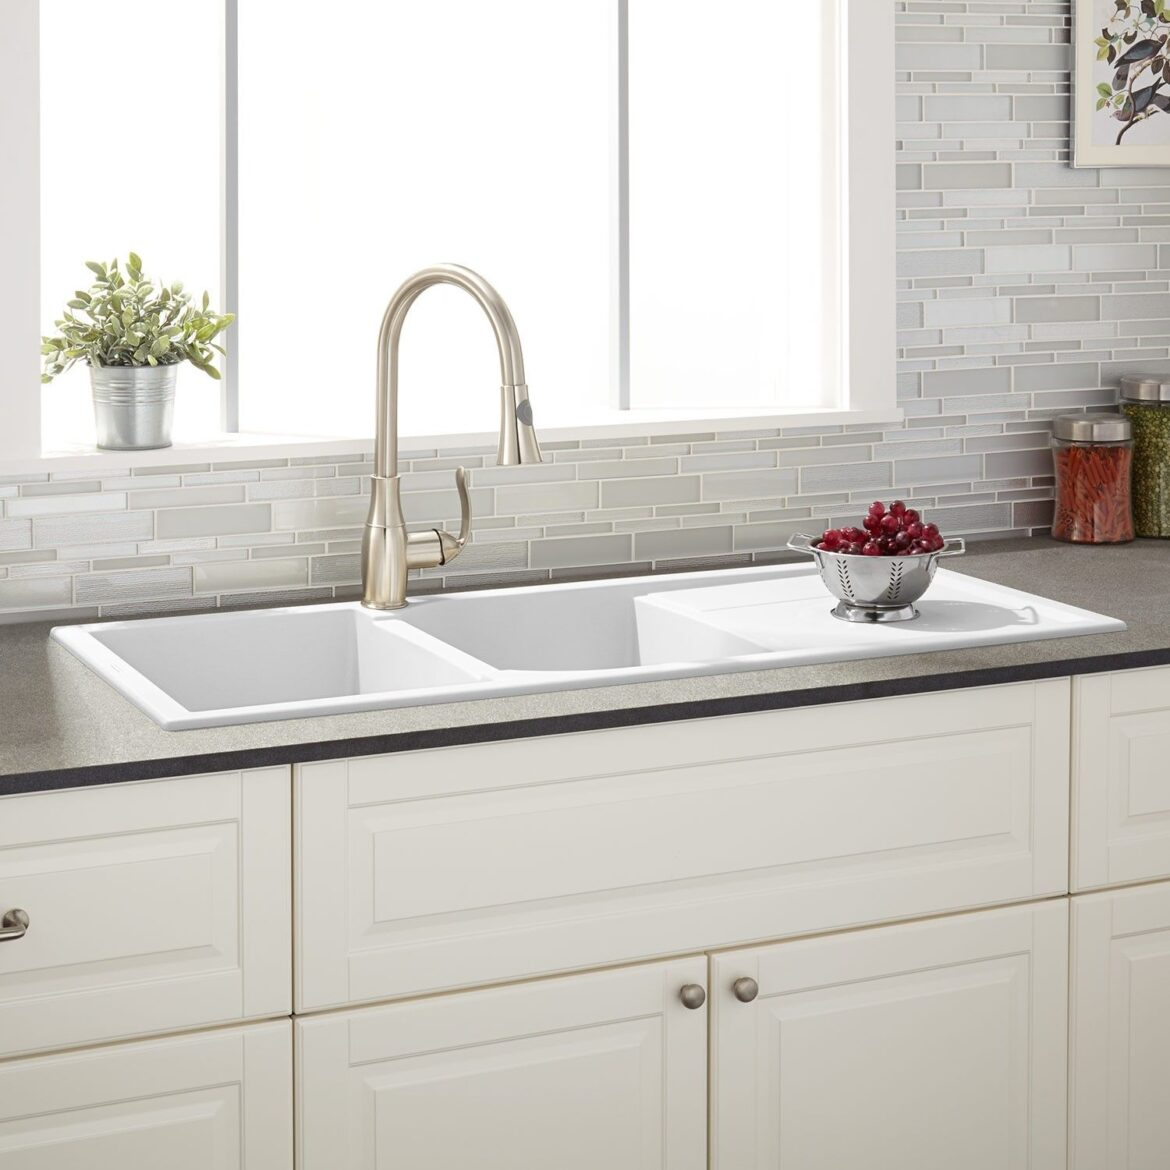 How to choose the Best White Kitchen Sink?